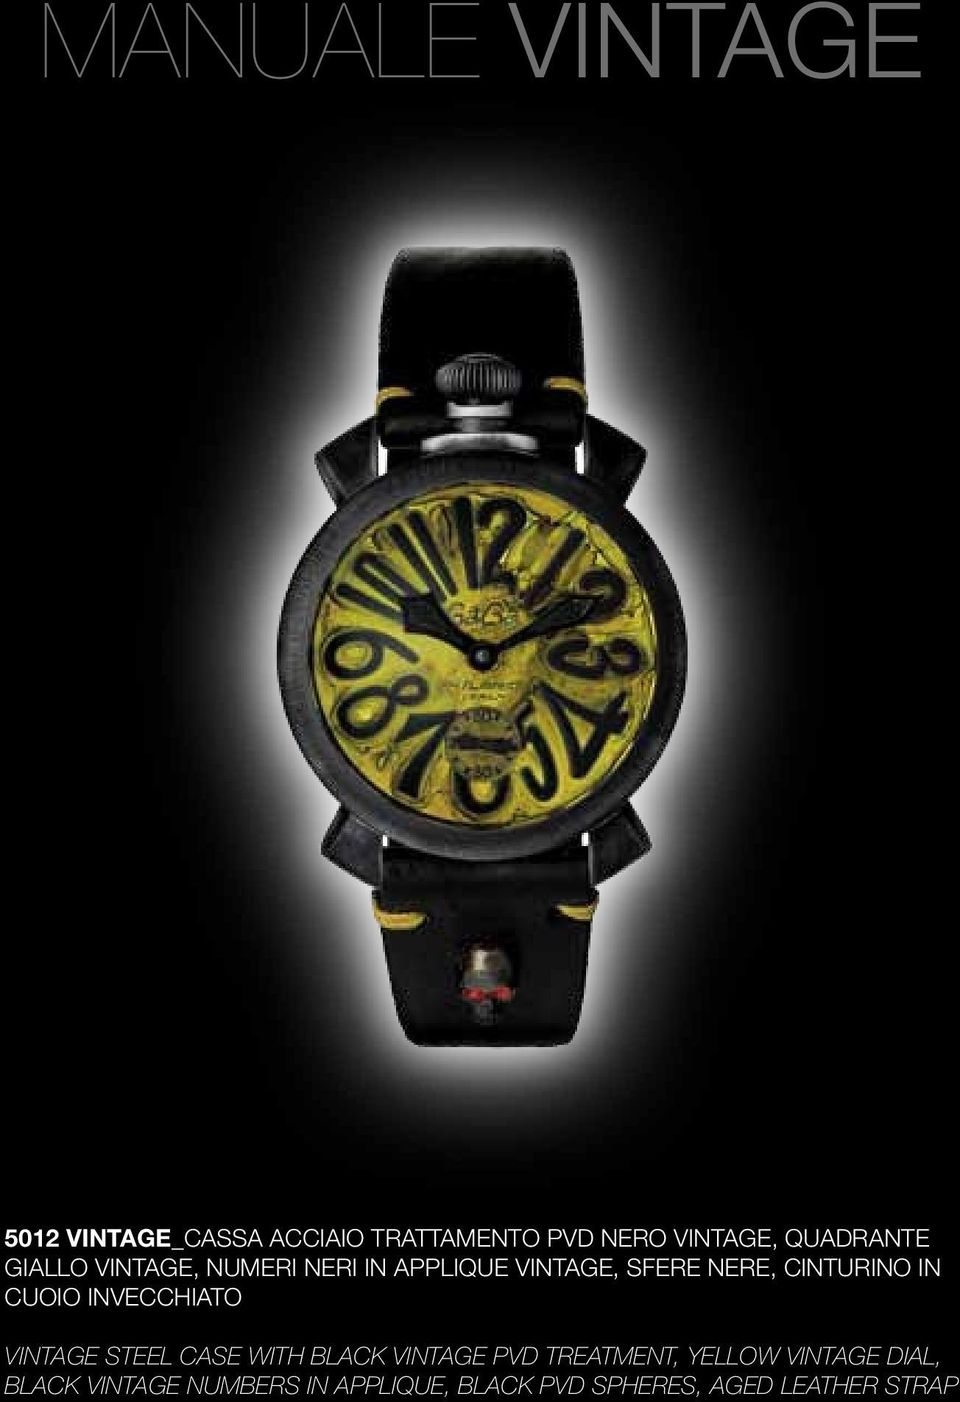 IN CUOIO INVECCHIATO VINTAGE STEEL CASE WITH BLACK VINTAGE PVD TREATMENT, YELLOW